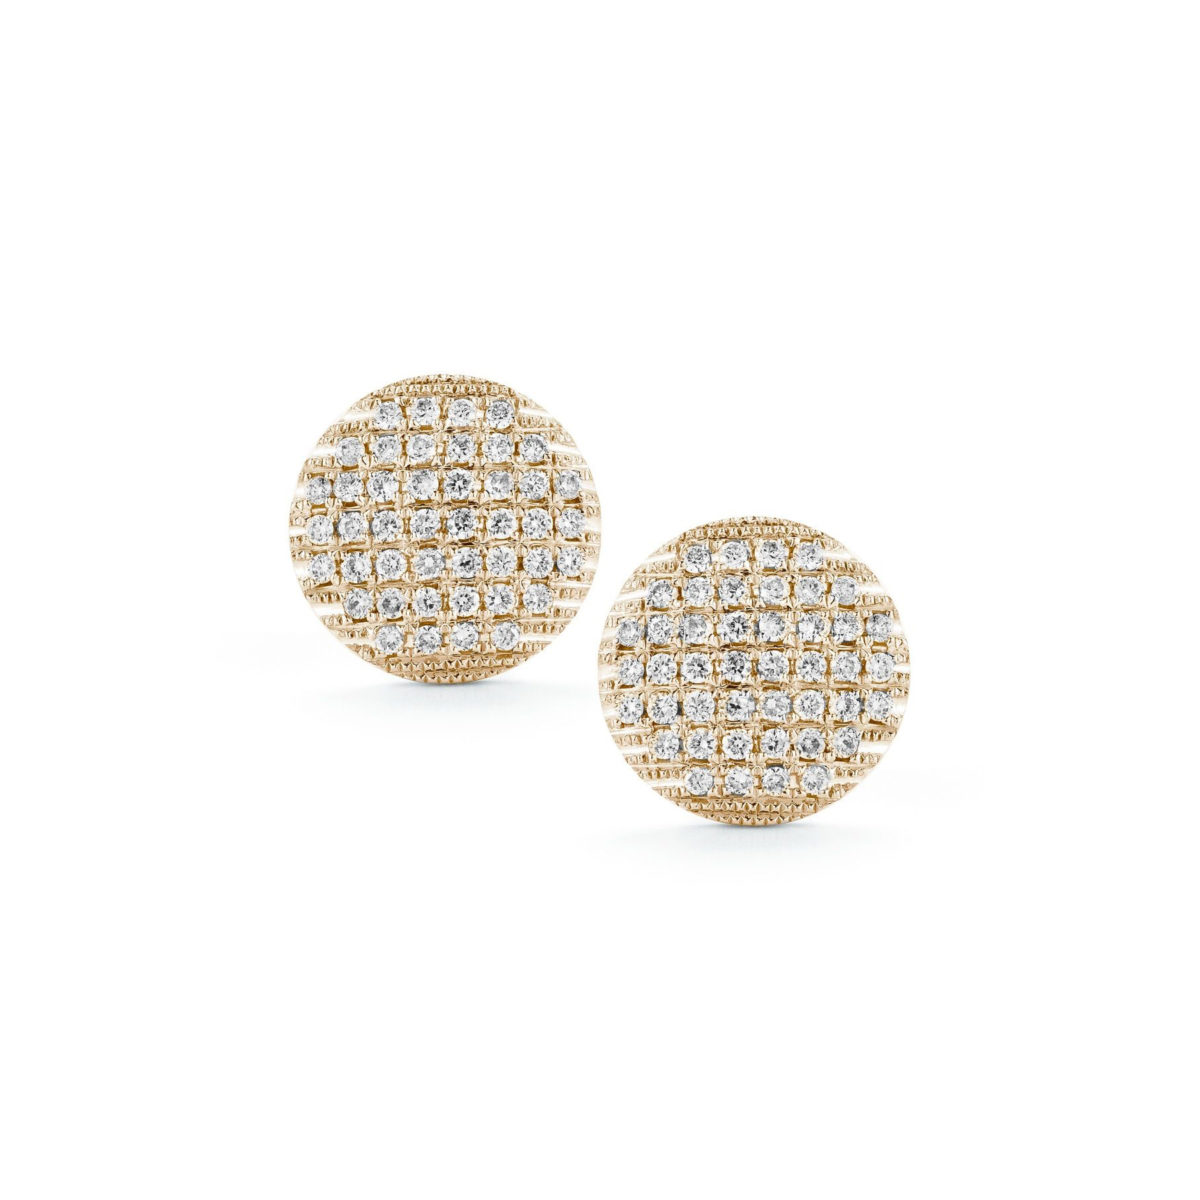 E1008 Dana Rebecca Large Lauren Joy Diamond Stud Earrings In Rose Gold Marshall Pierce Company